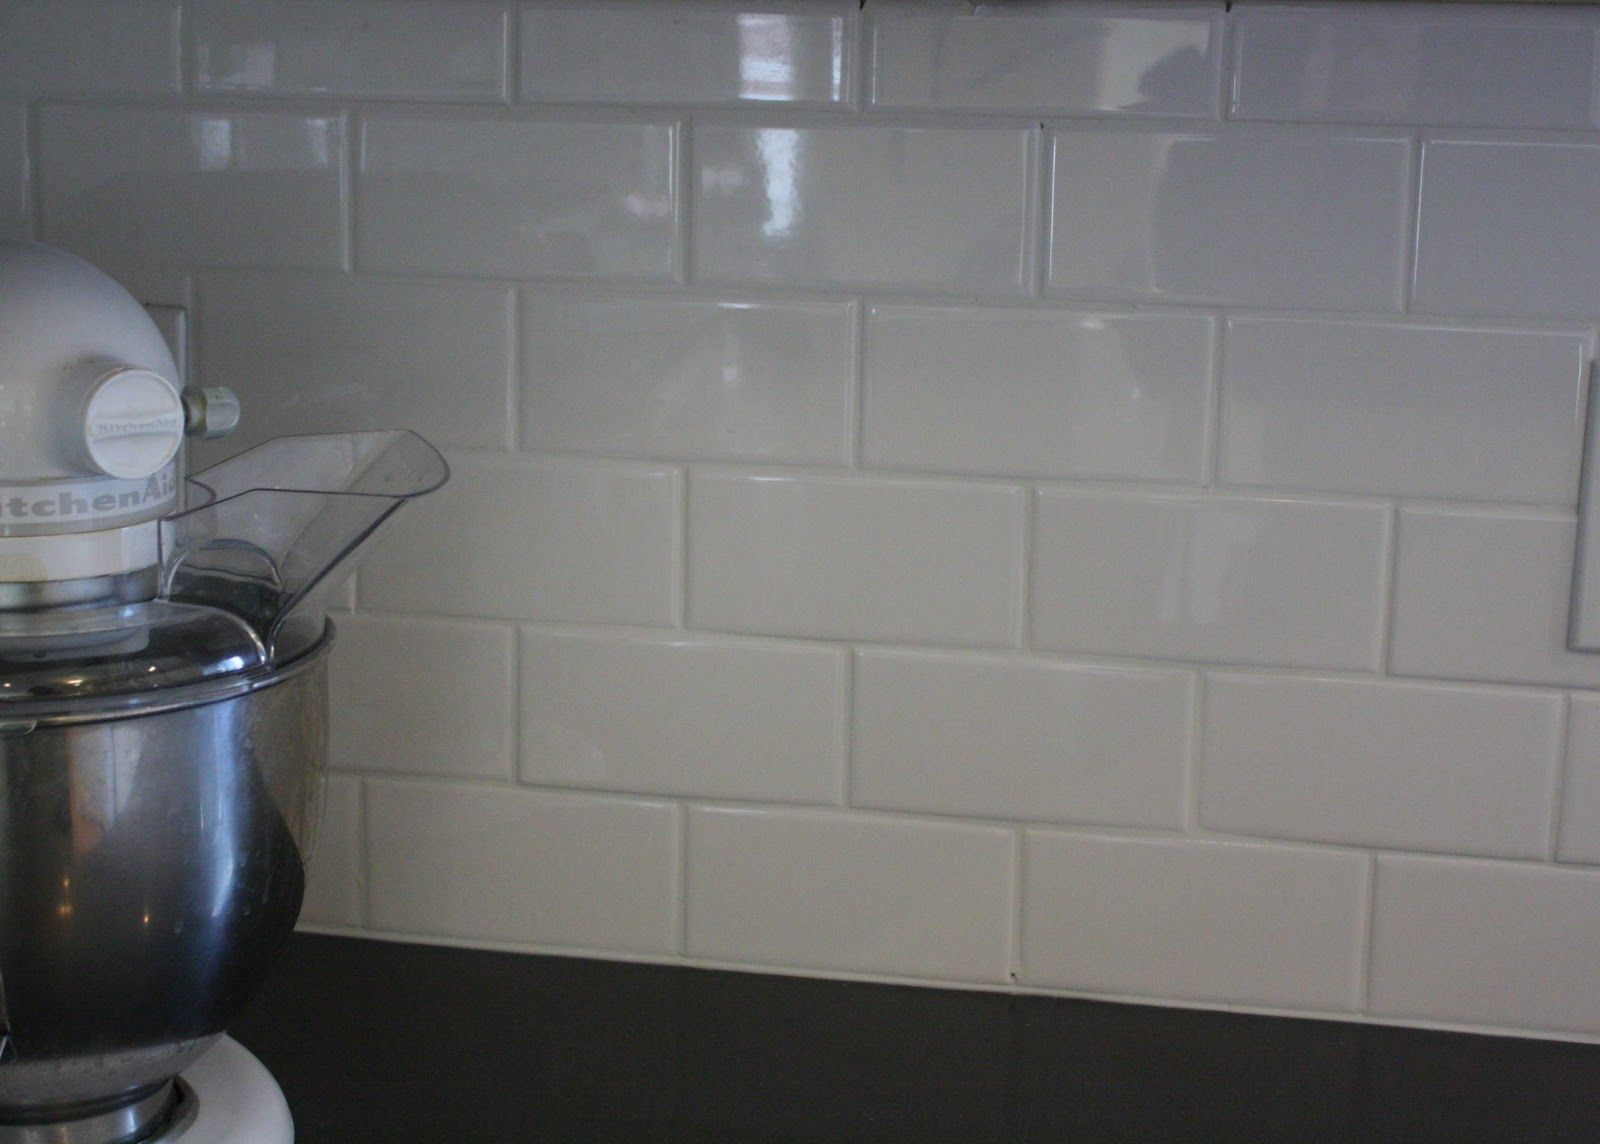 No grout glass tile backsplash love the pure white subway tile no grout glass tile backsplash love the pure white subway tile backsplash but with the dailygadgetfo Gallery